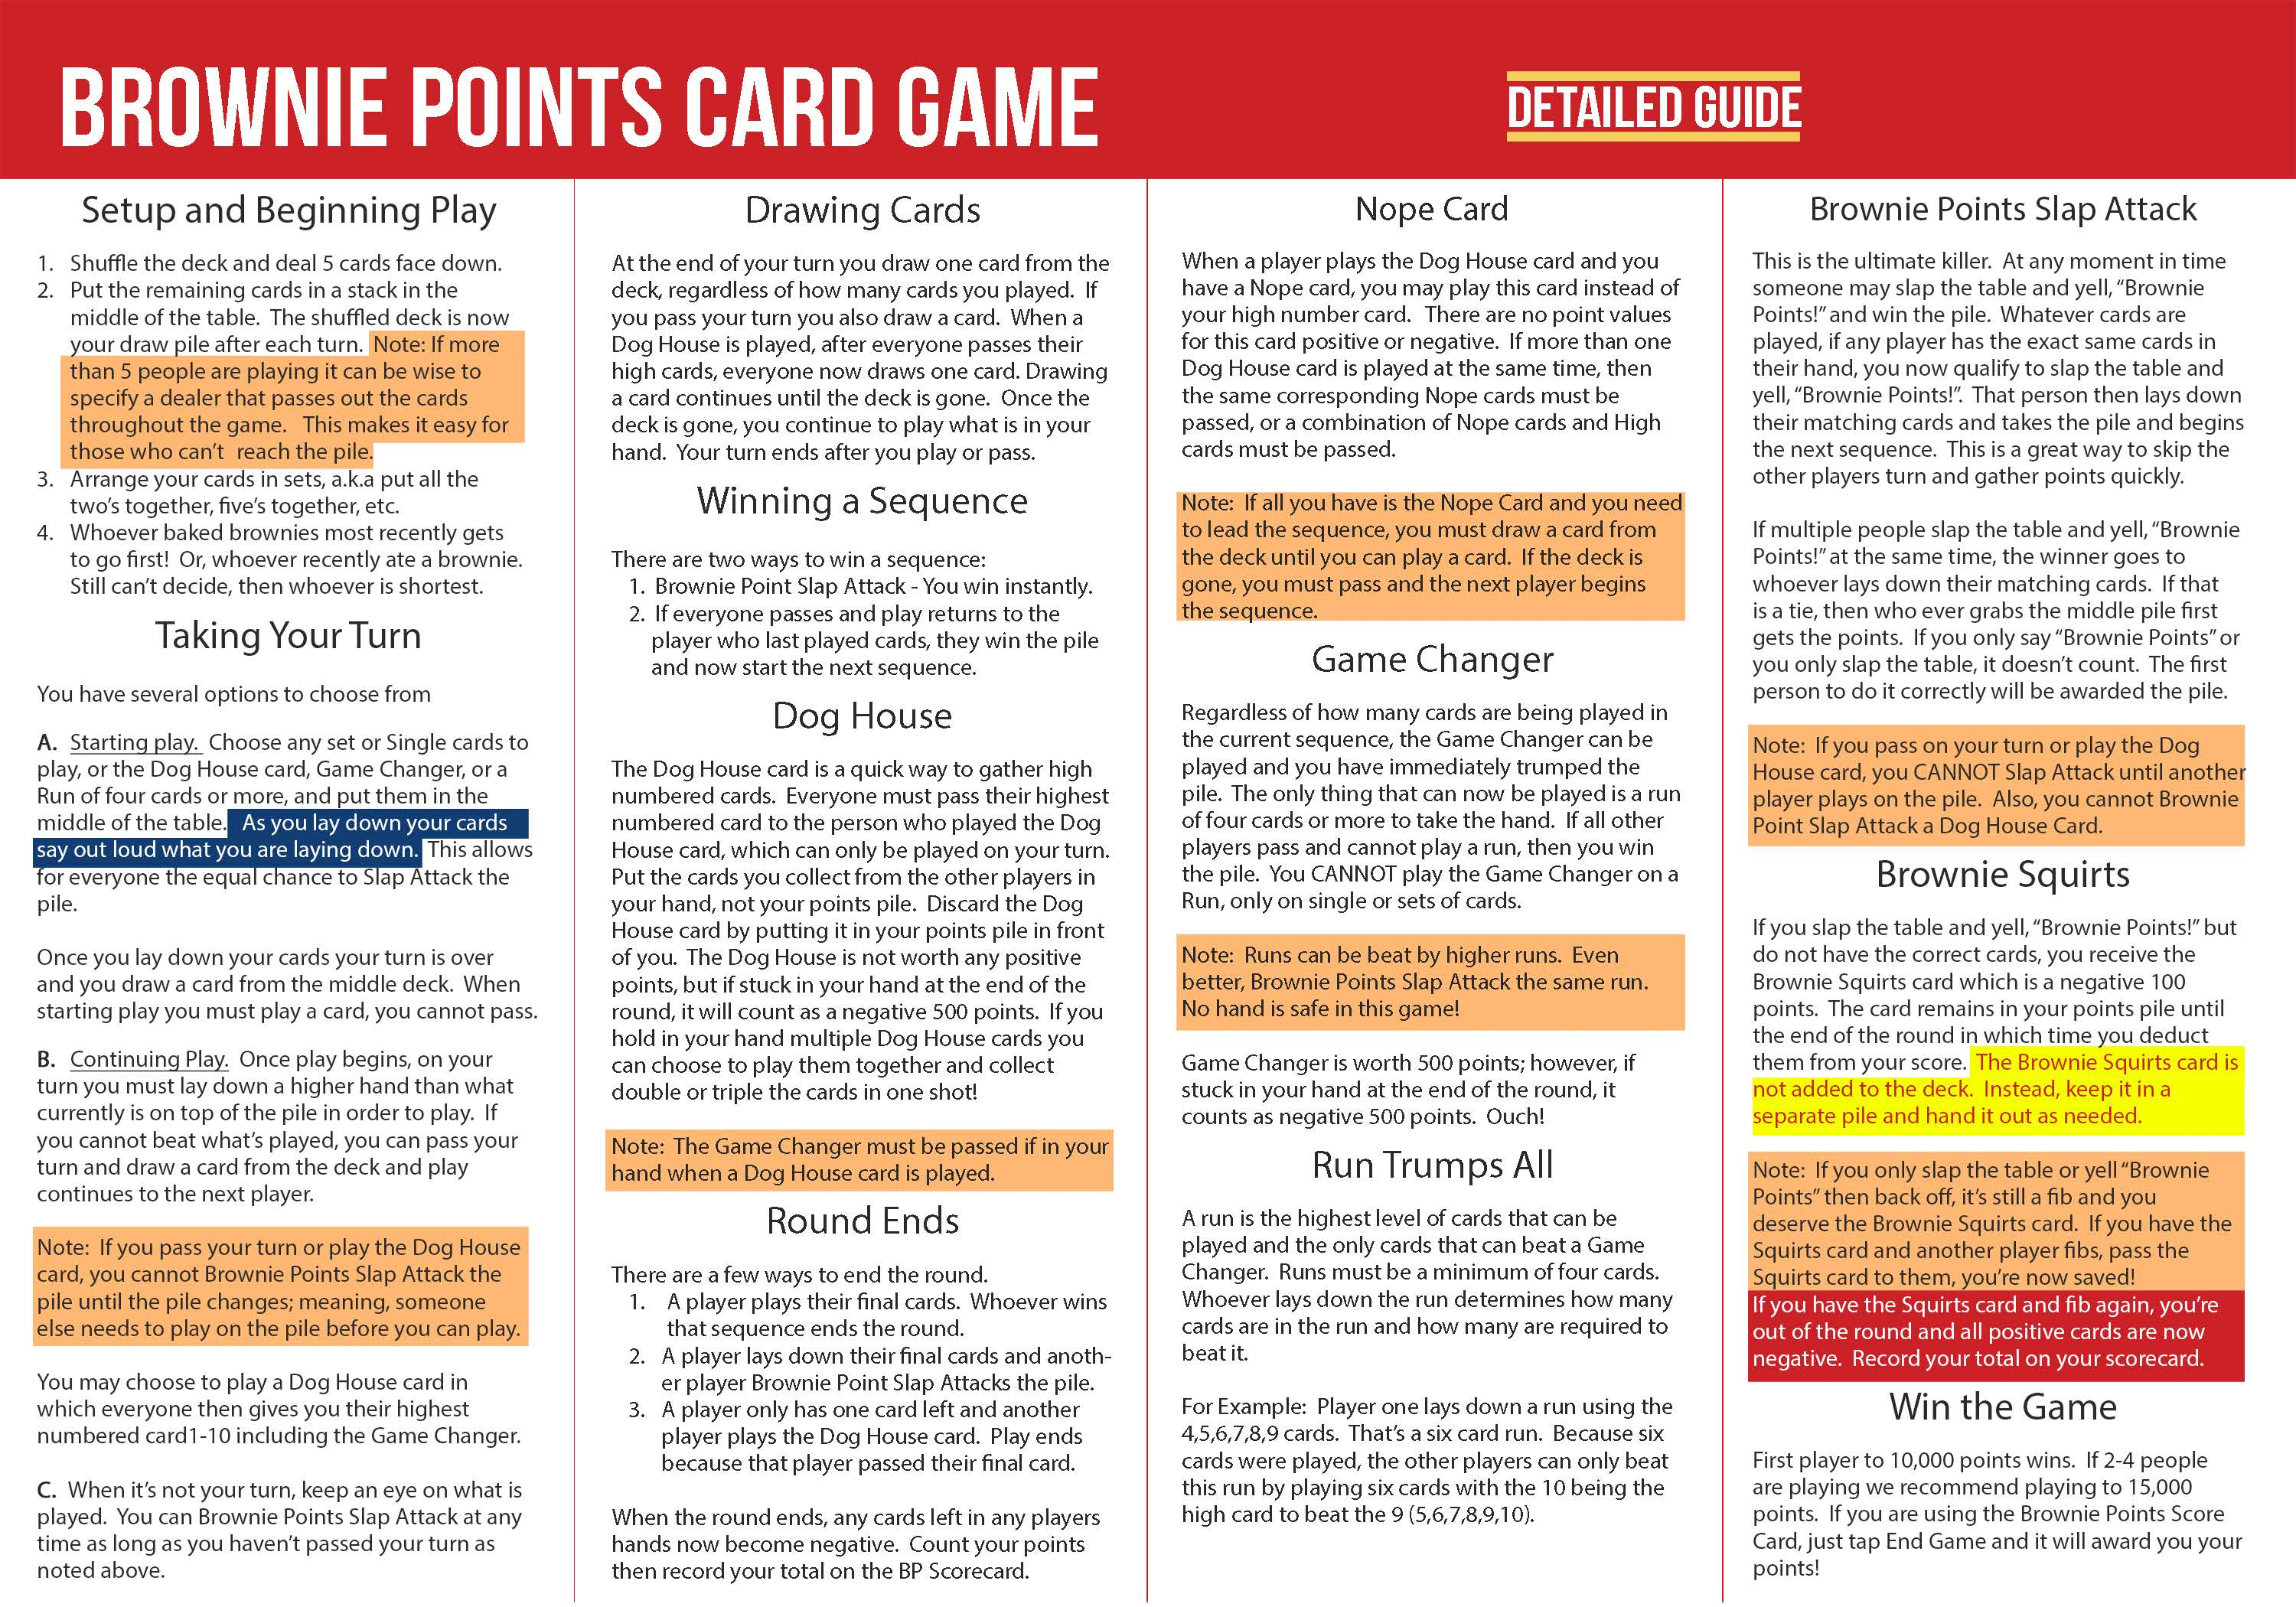 Brownie Points Card Game Official Rules